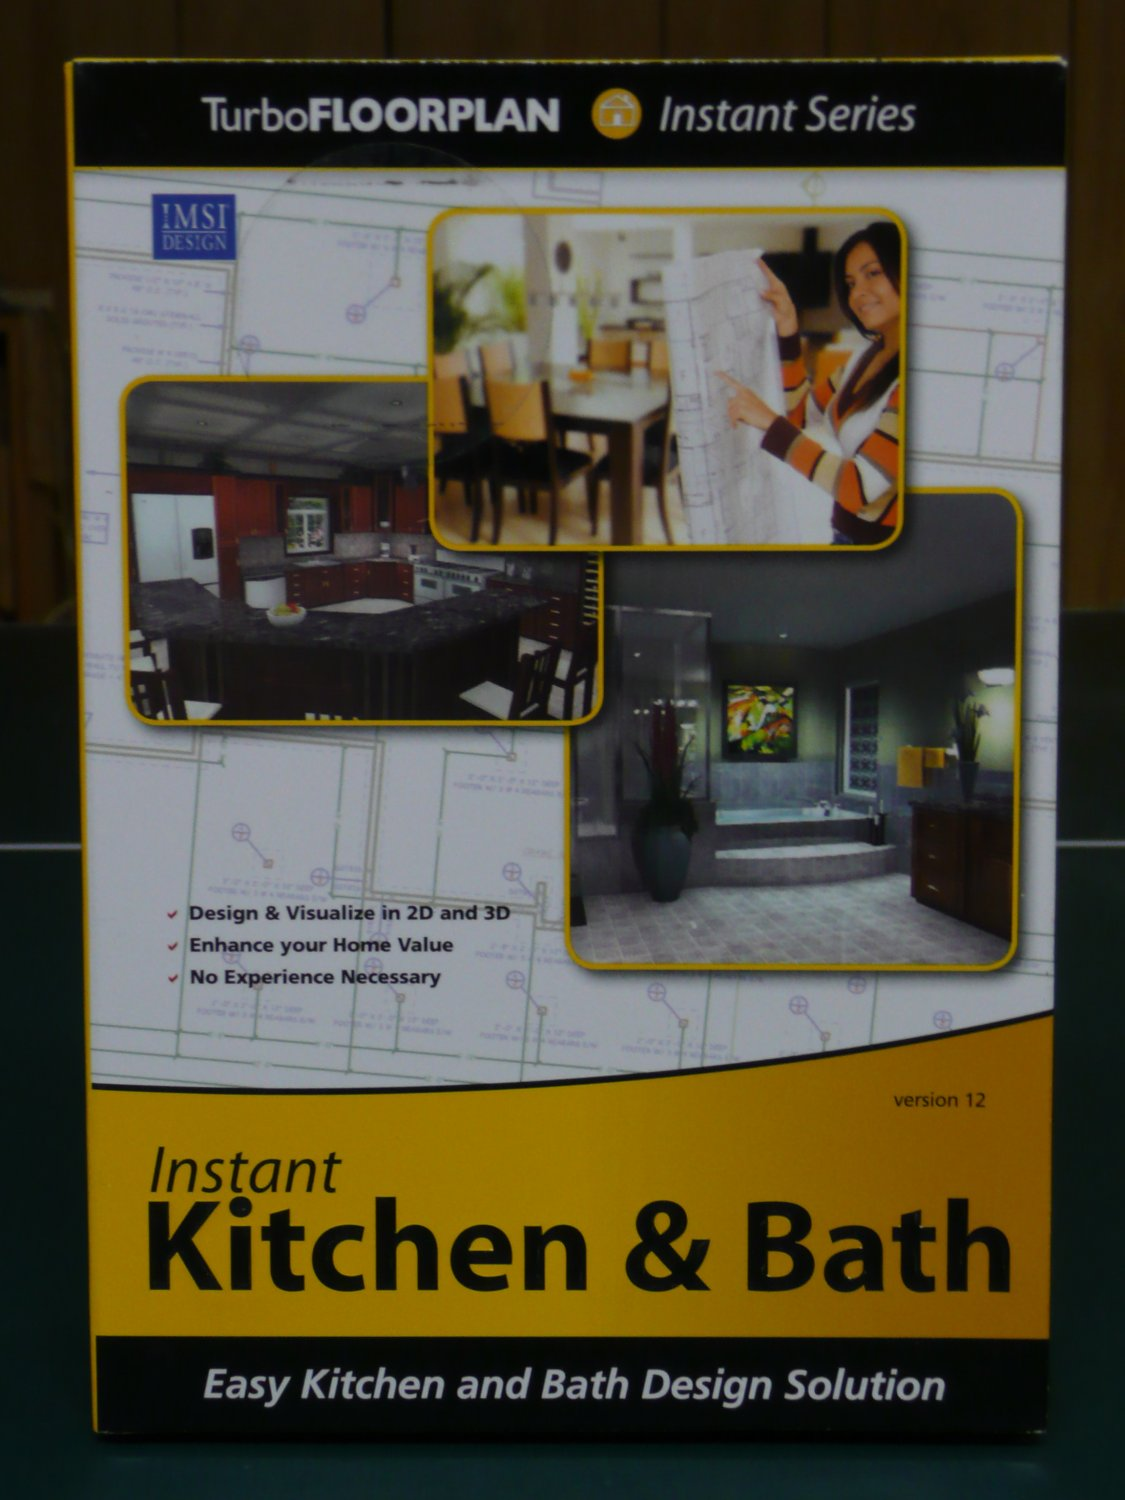 IMSI TurboFloorPlan Instant Kitchen and Bath Version 12